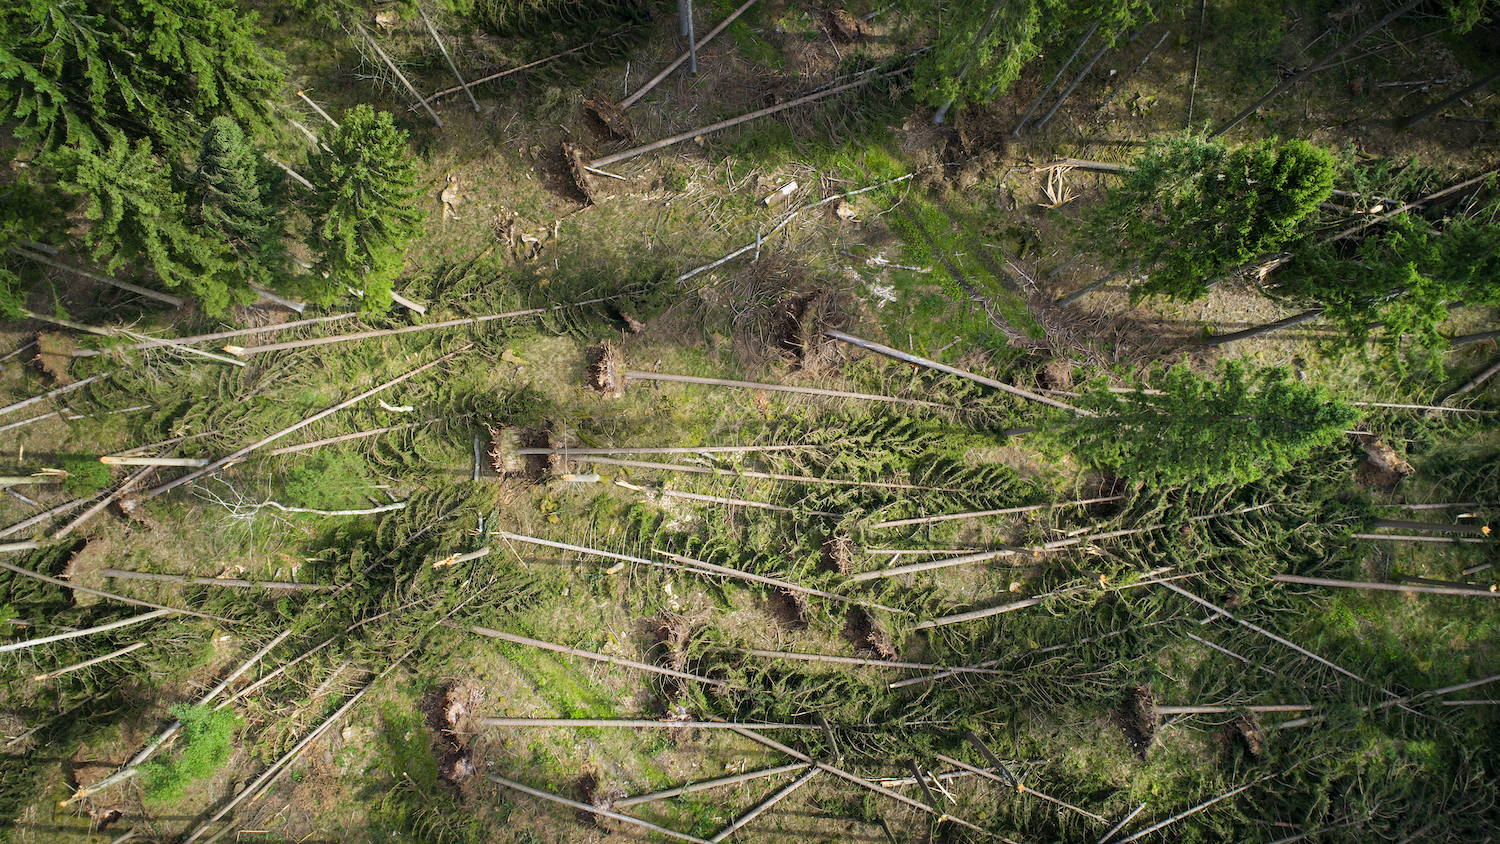 Trees after a Hurricane - Hydrology and Watershed Management Forestry and Environmental Resources at NC State University